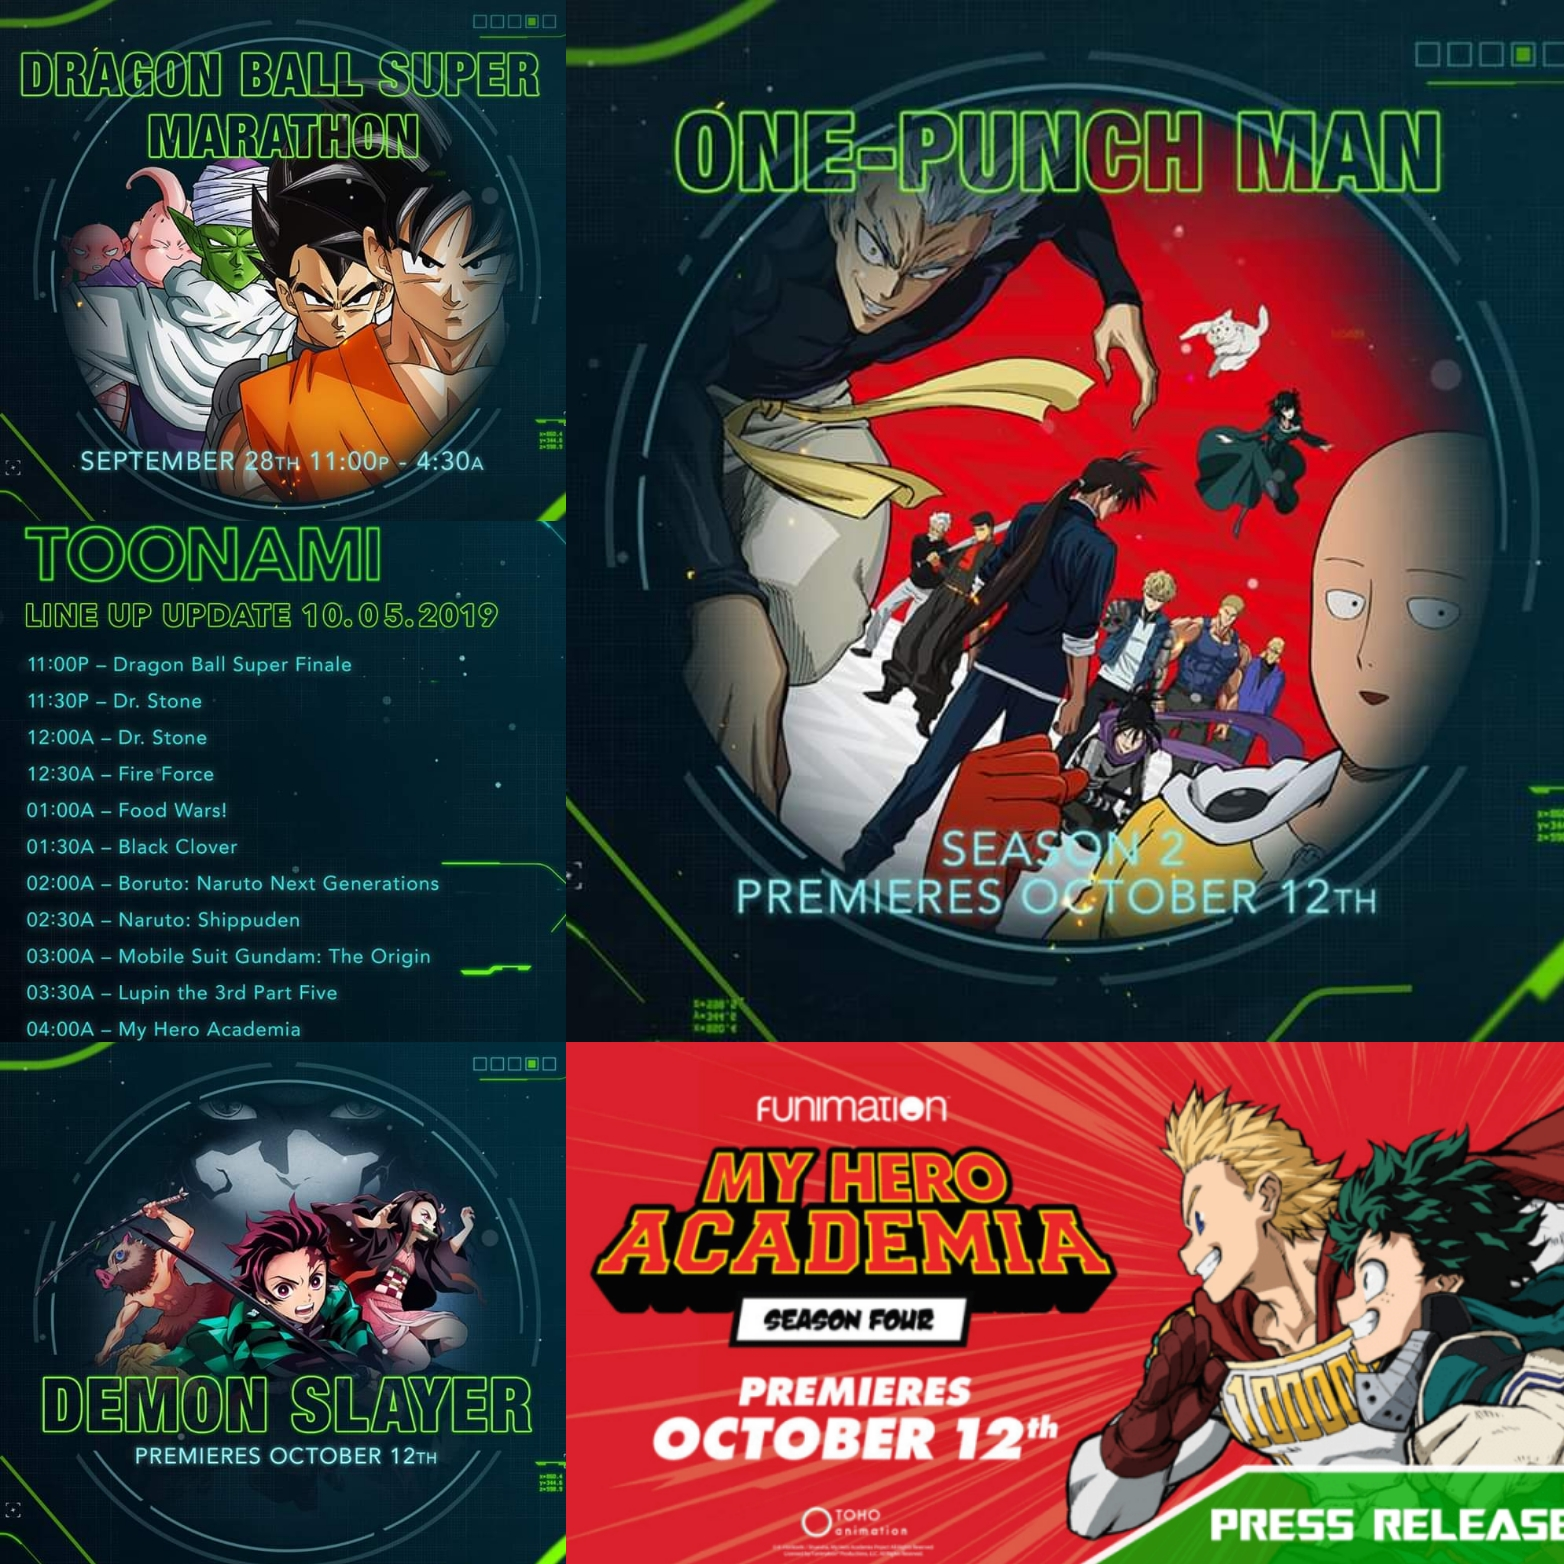 Toonami Announcement Rundown: Dragon Ball Super Marathon Sept. 28th, Dr. Stone Doubleheader on Oct. 5th, Demon Slayer Dub and One-Punch Man S2 Premieres Oct. 12th on Toonami, My Hero Academia S4 SimulCast/Dub Announced Oct. 12th Toonami Premiere Still Unknown